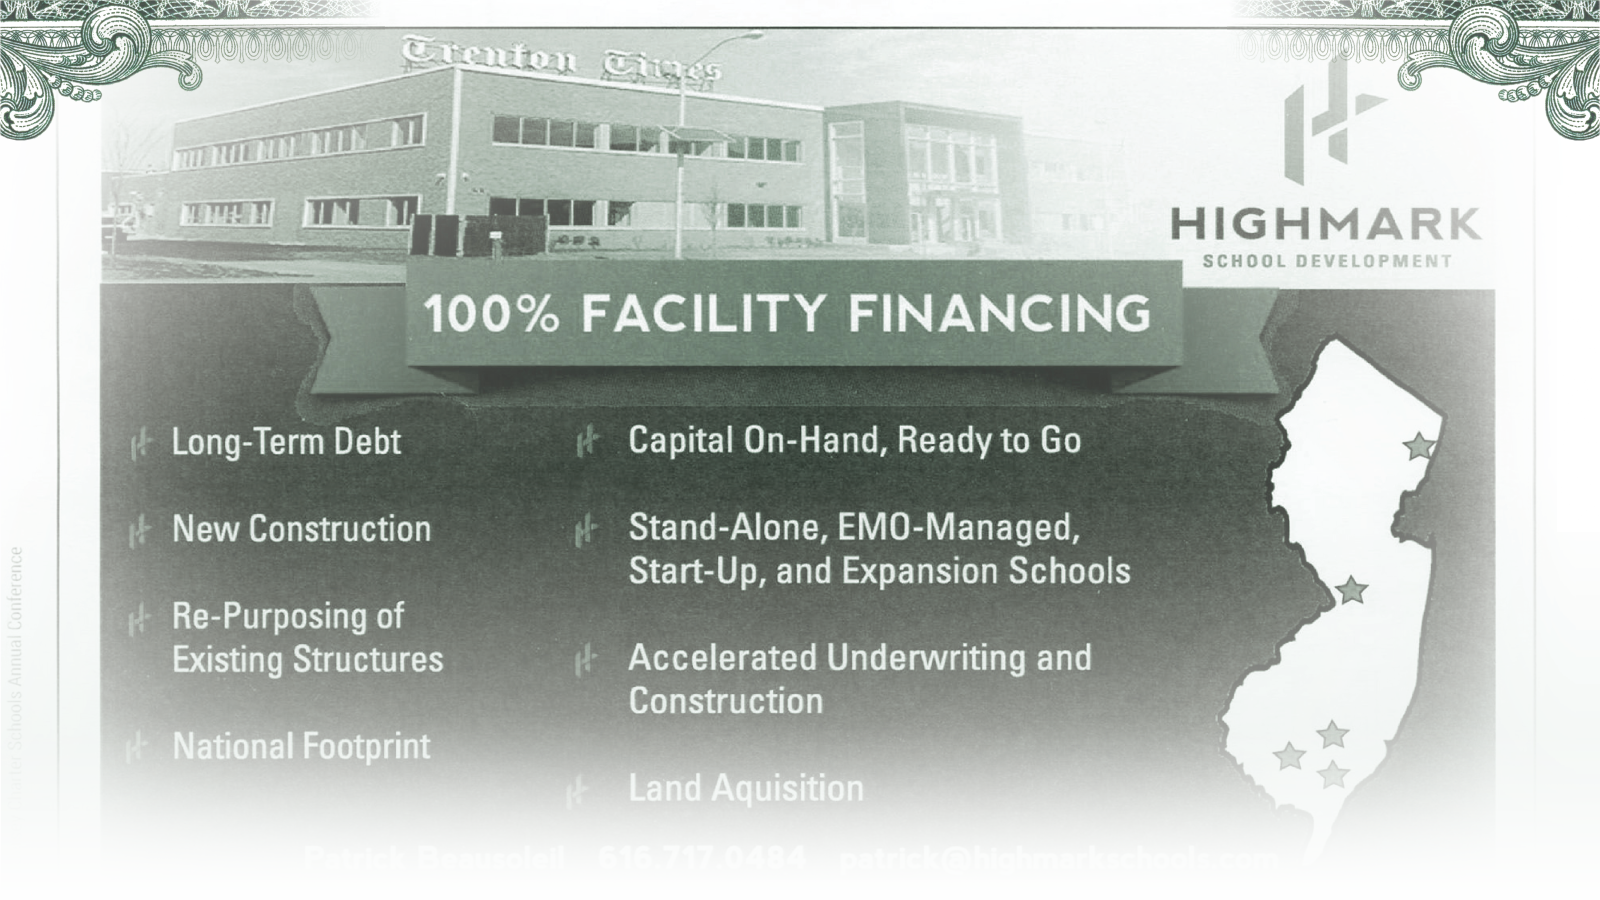 An advertisement in a New Jersey Charter Schools Conference program from 2017.